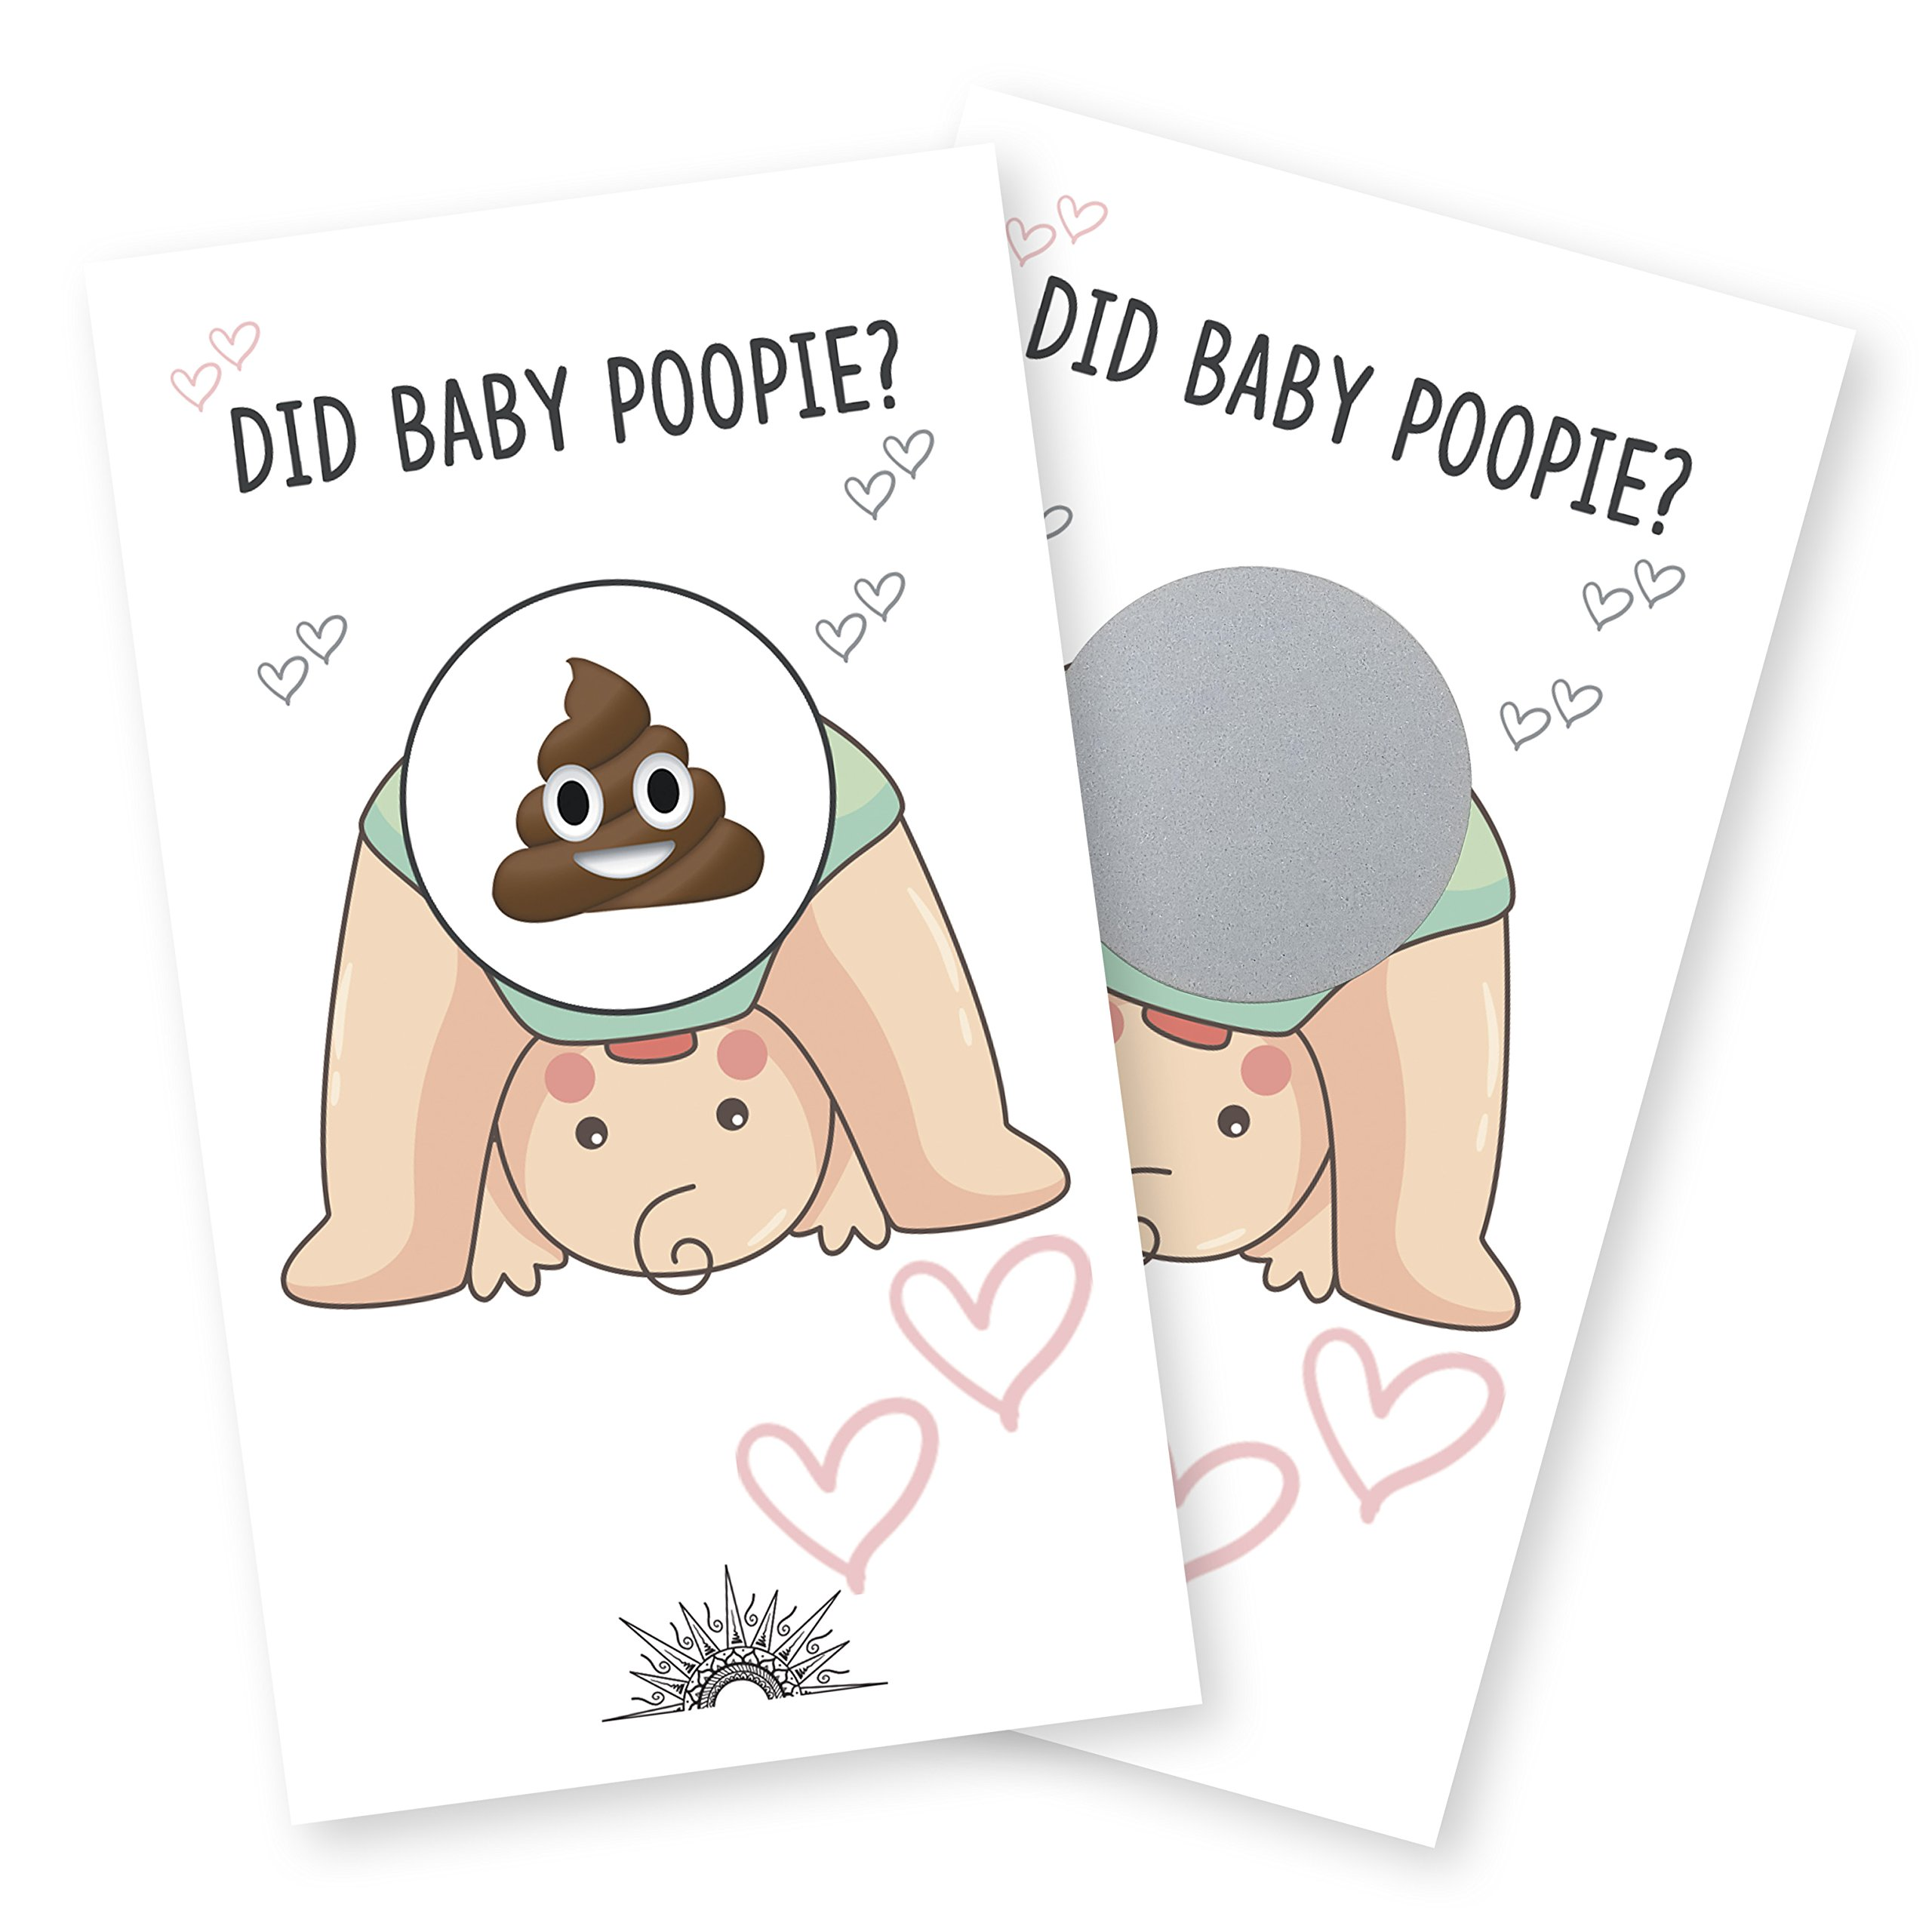 24 Baby Shower Poop Emoji Scratch Off Lottery Ticket Raffle